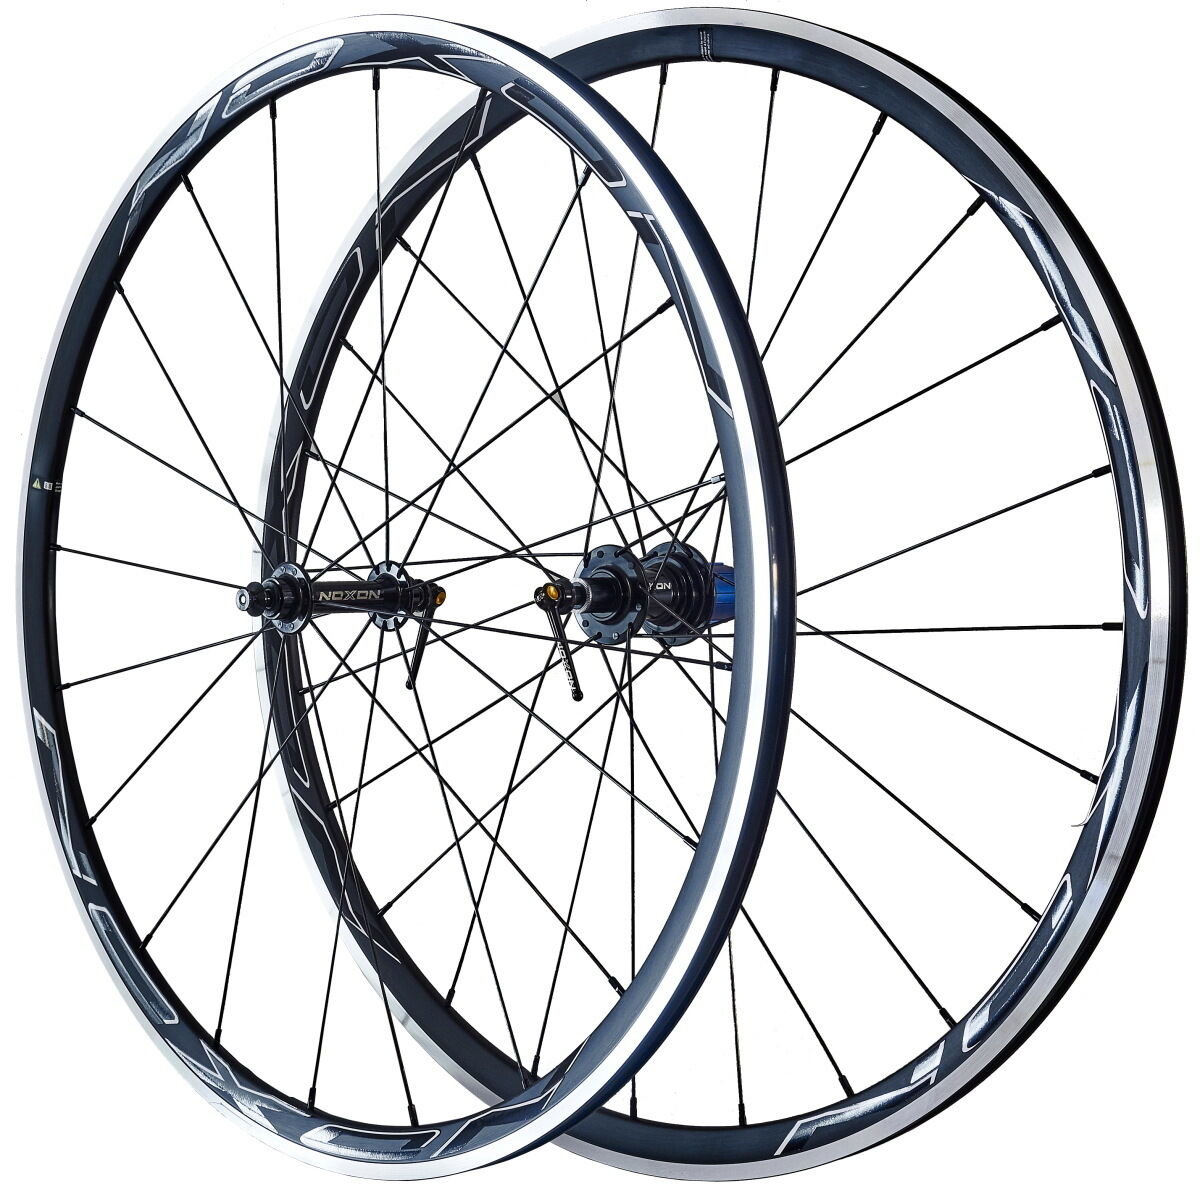 NOXON BIKE NITRO ROAD -  RAOD WHEELSET 1450 GRAMS 28mm PROFILE